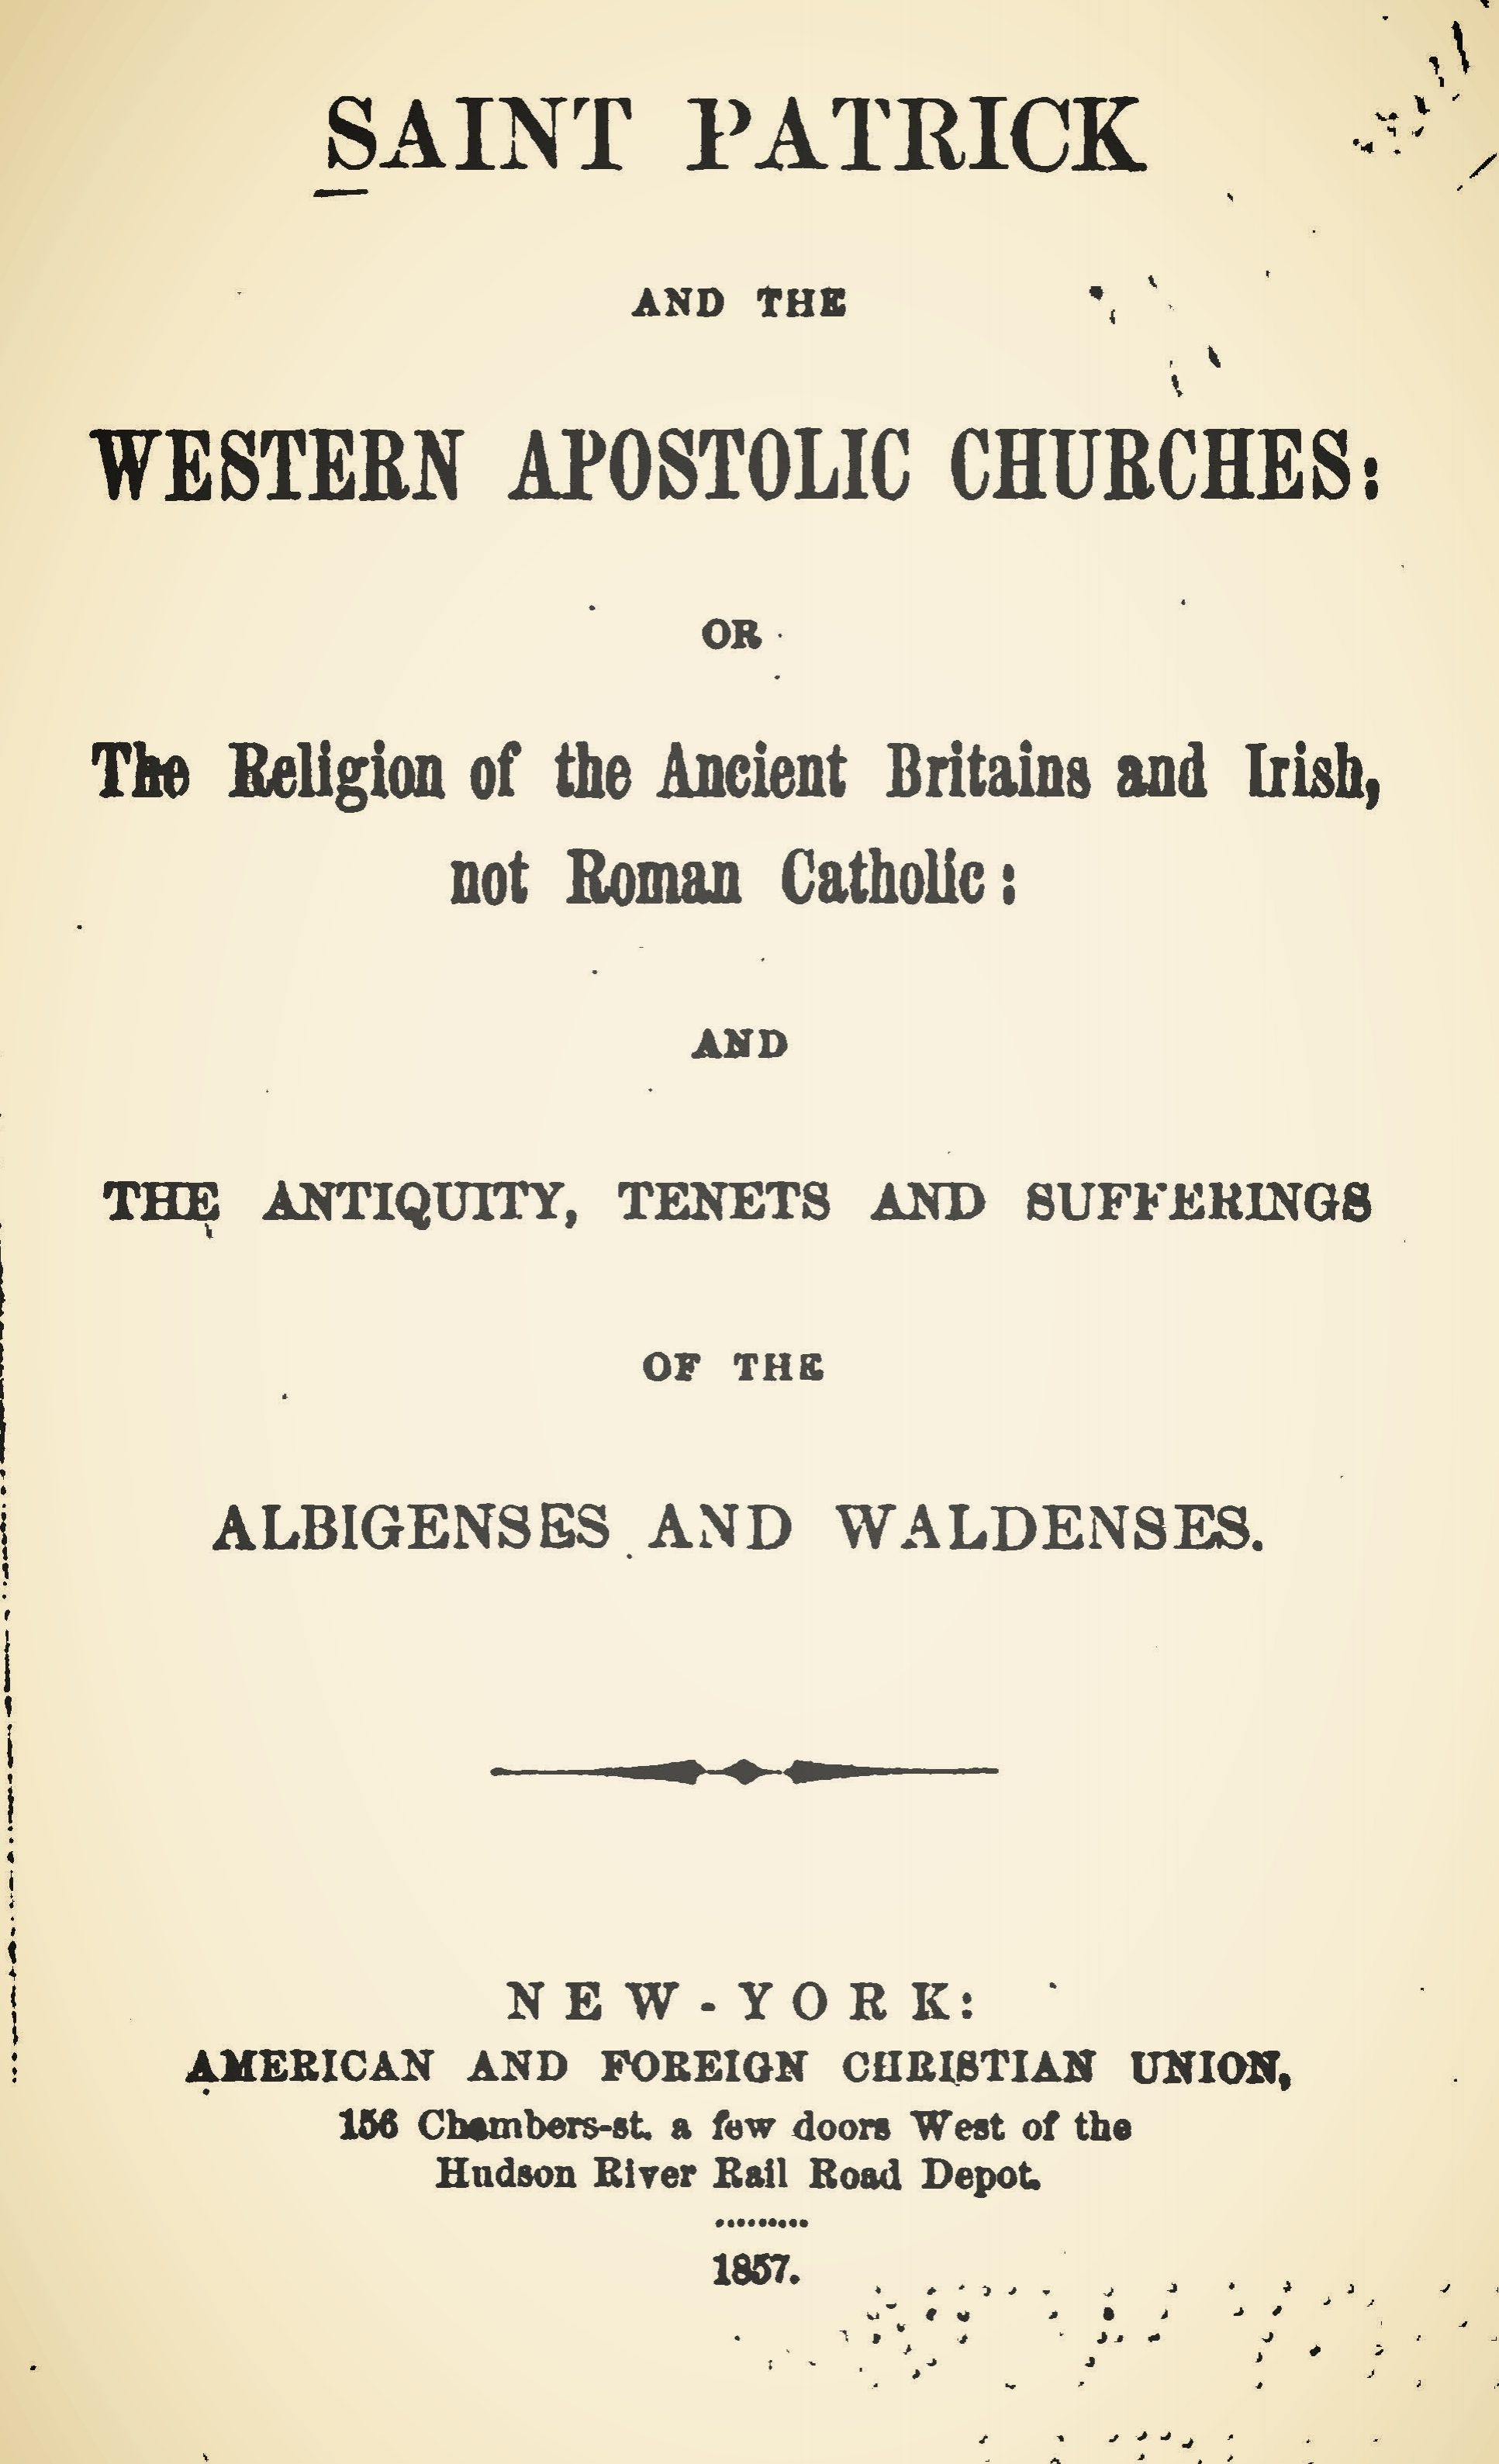 Brownlee, William Craig, Saint Patrick and the Western Apostolic Churches Title Page.jpg